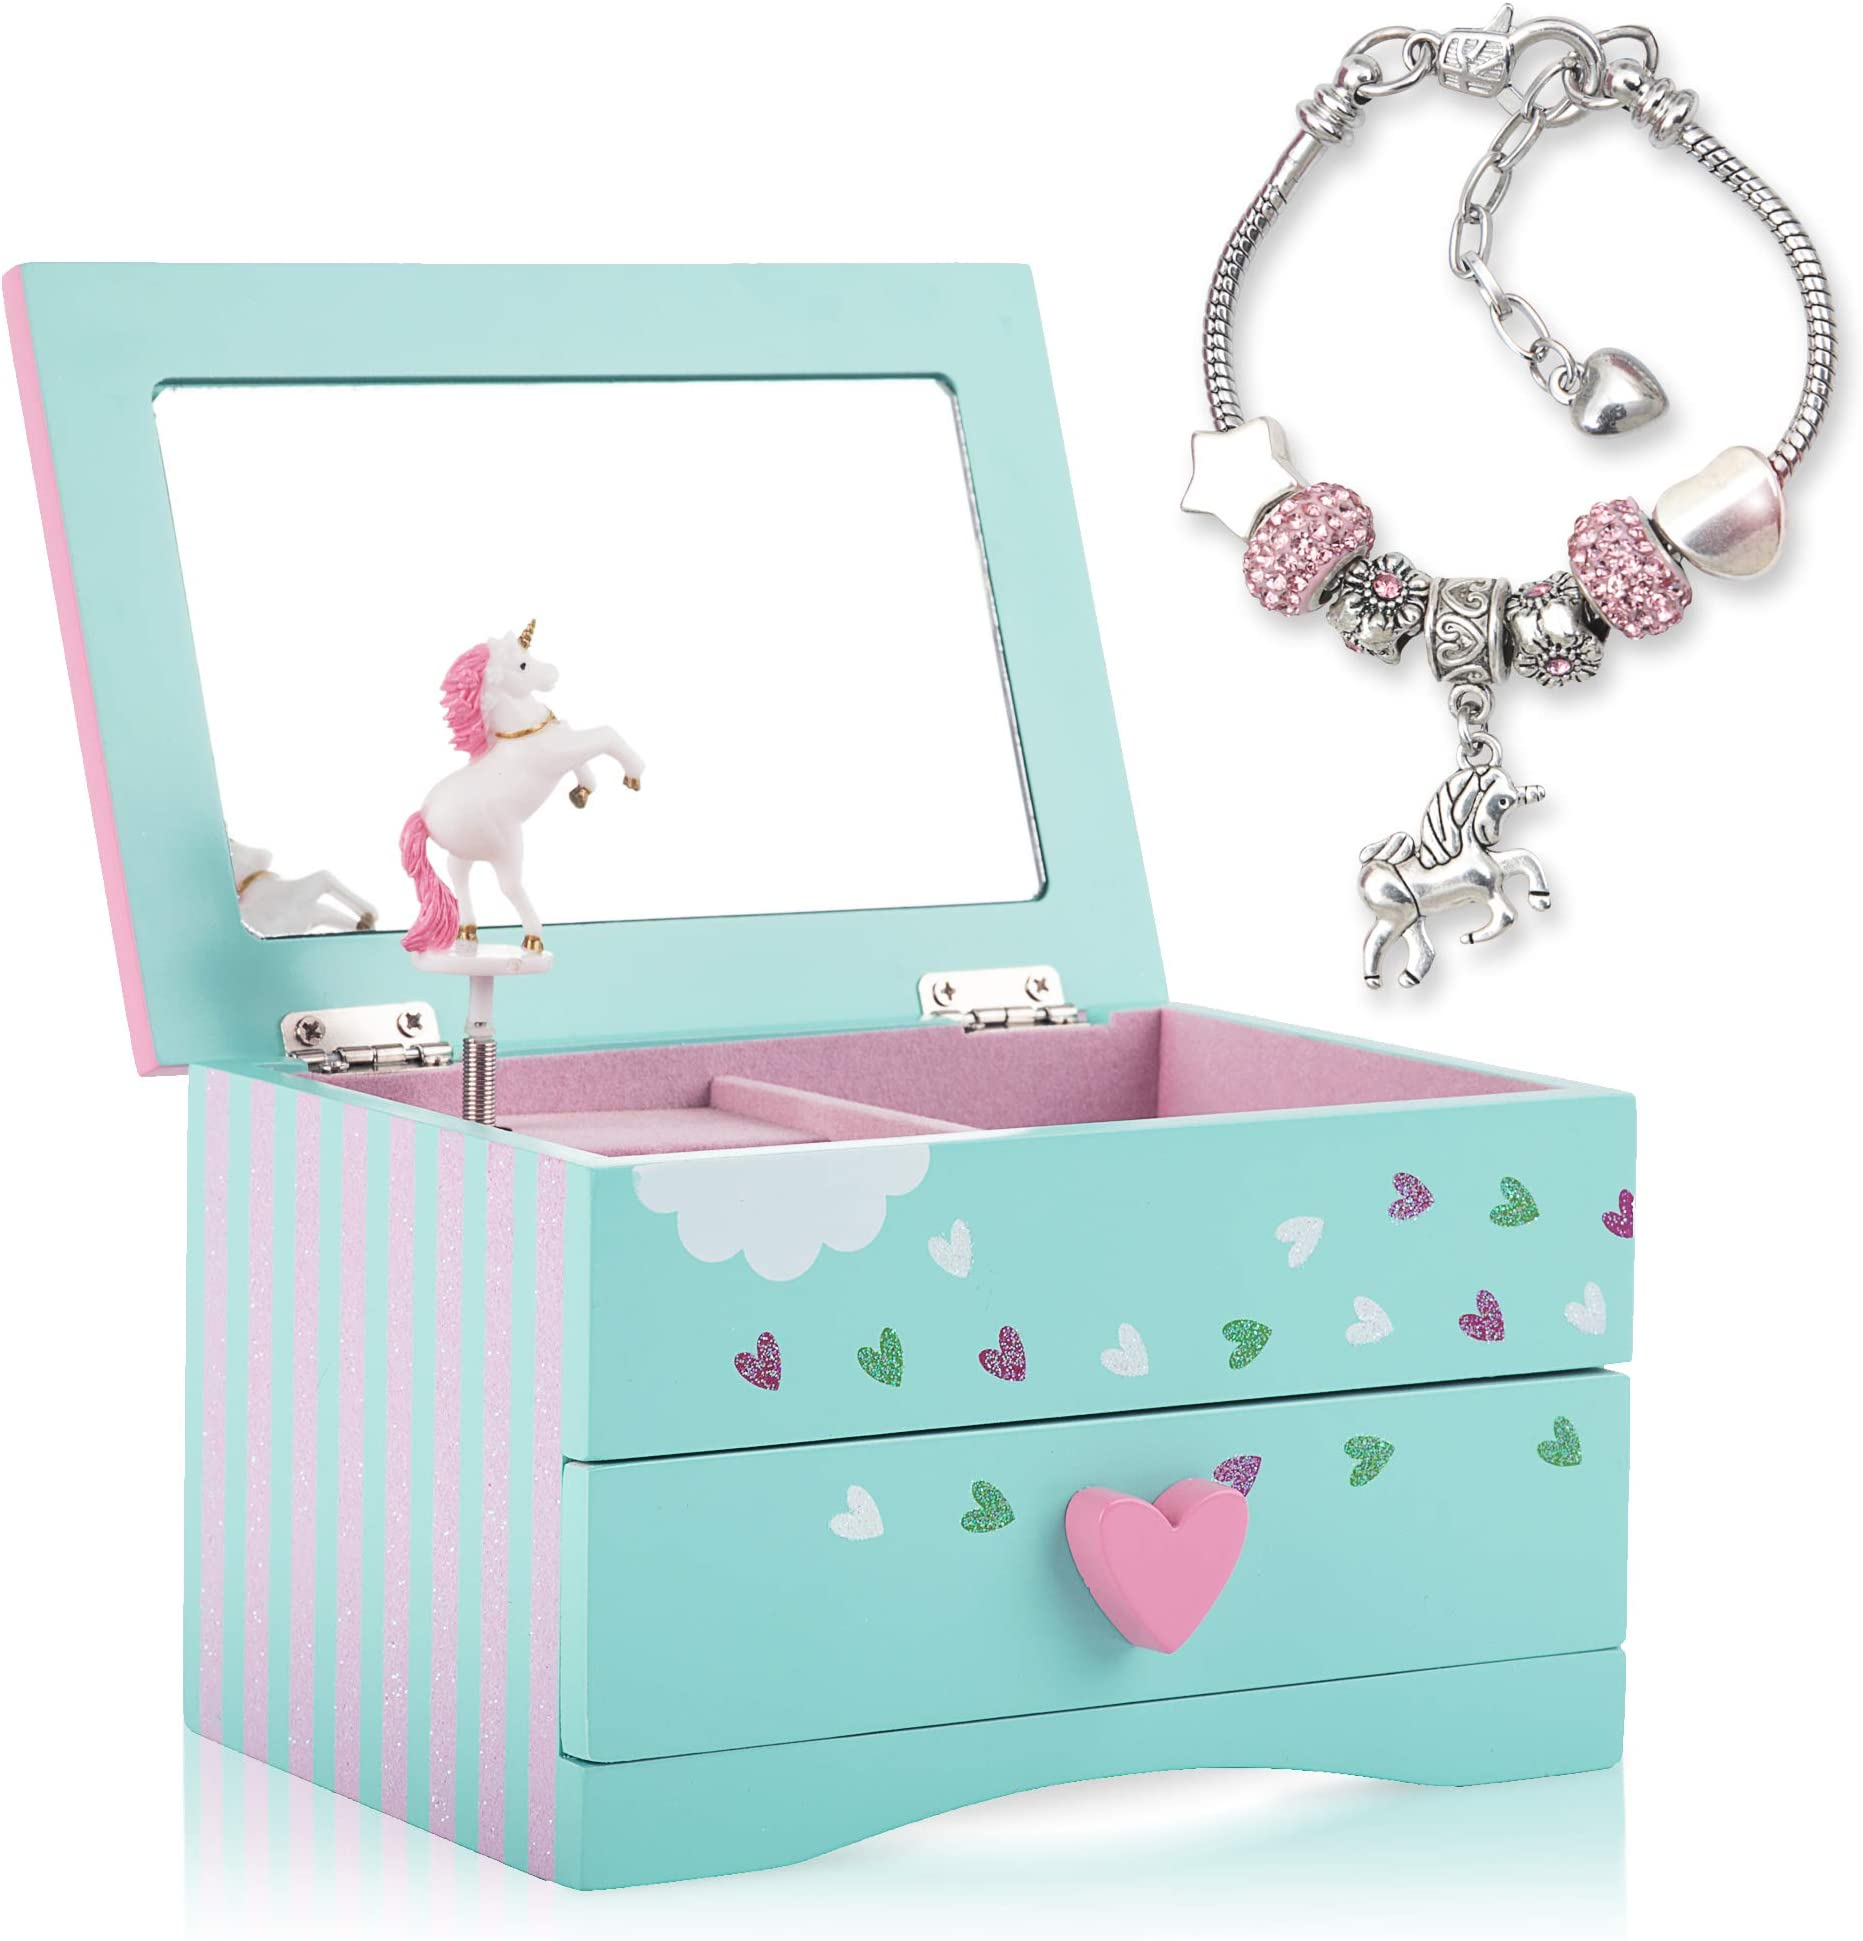 SAVE 25/% J.S.N.Y Earrings Rings and Things Jewelry Box for Kids Children 80s 90s Plastic Cute Storage Box